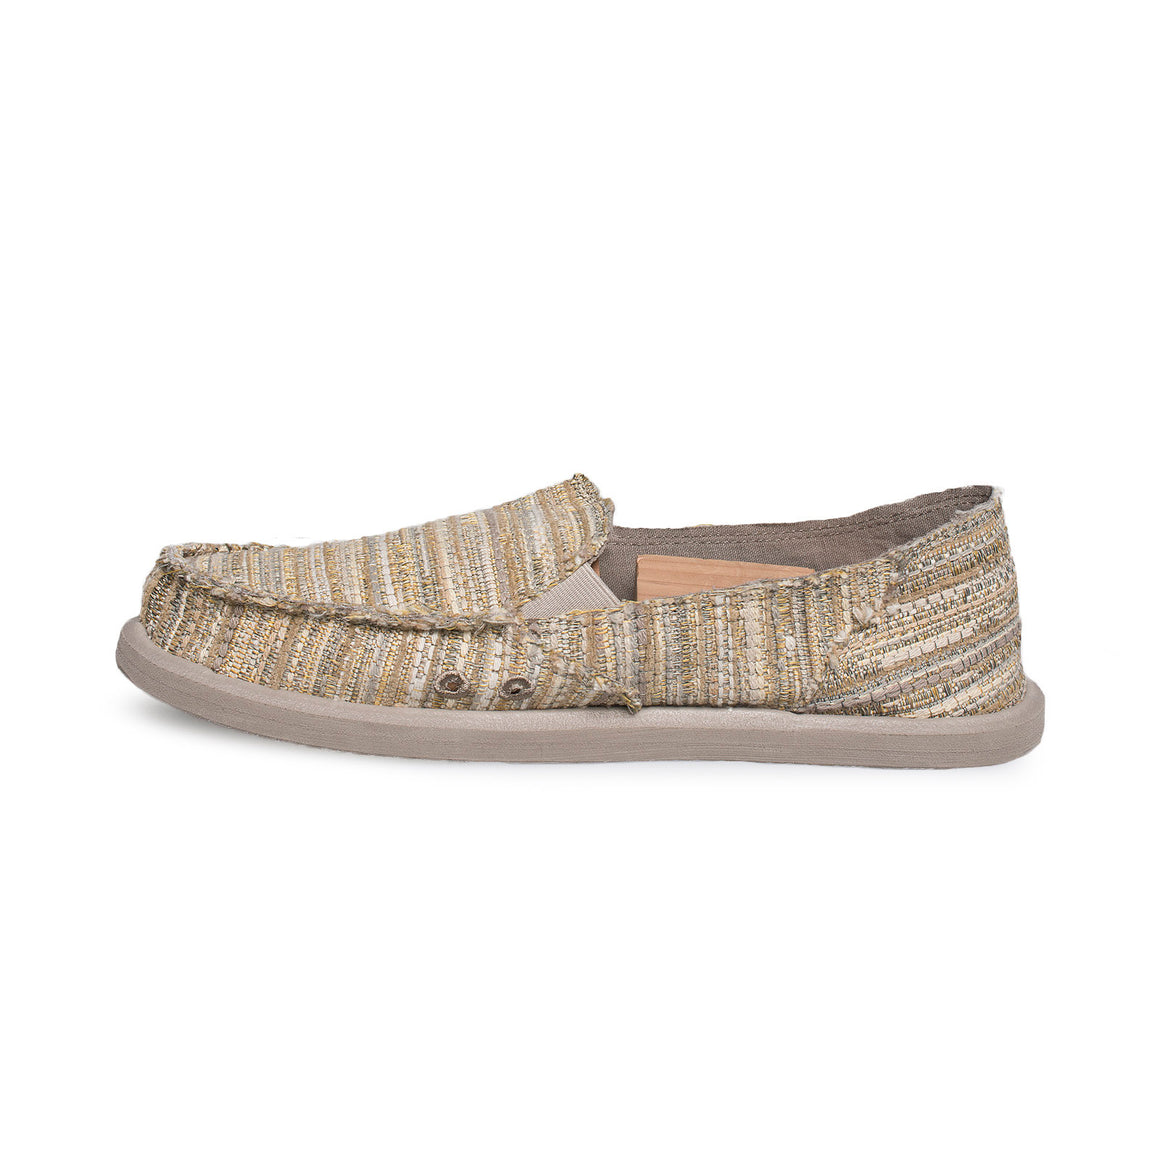 Sanuk Donna Natural Boho Shoes - Women's